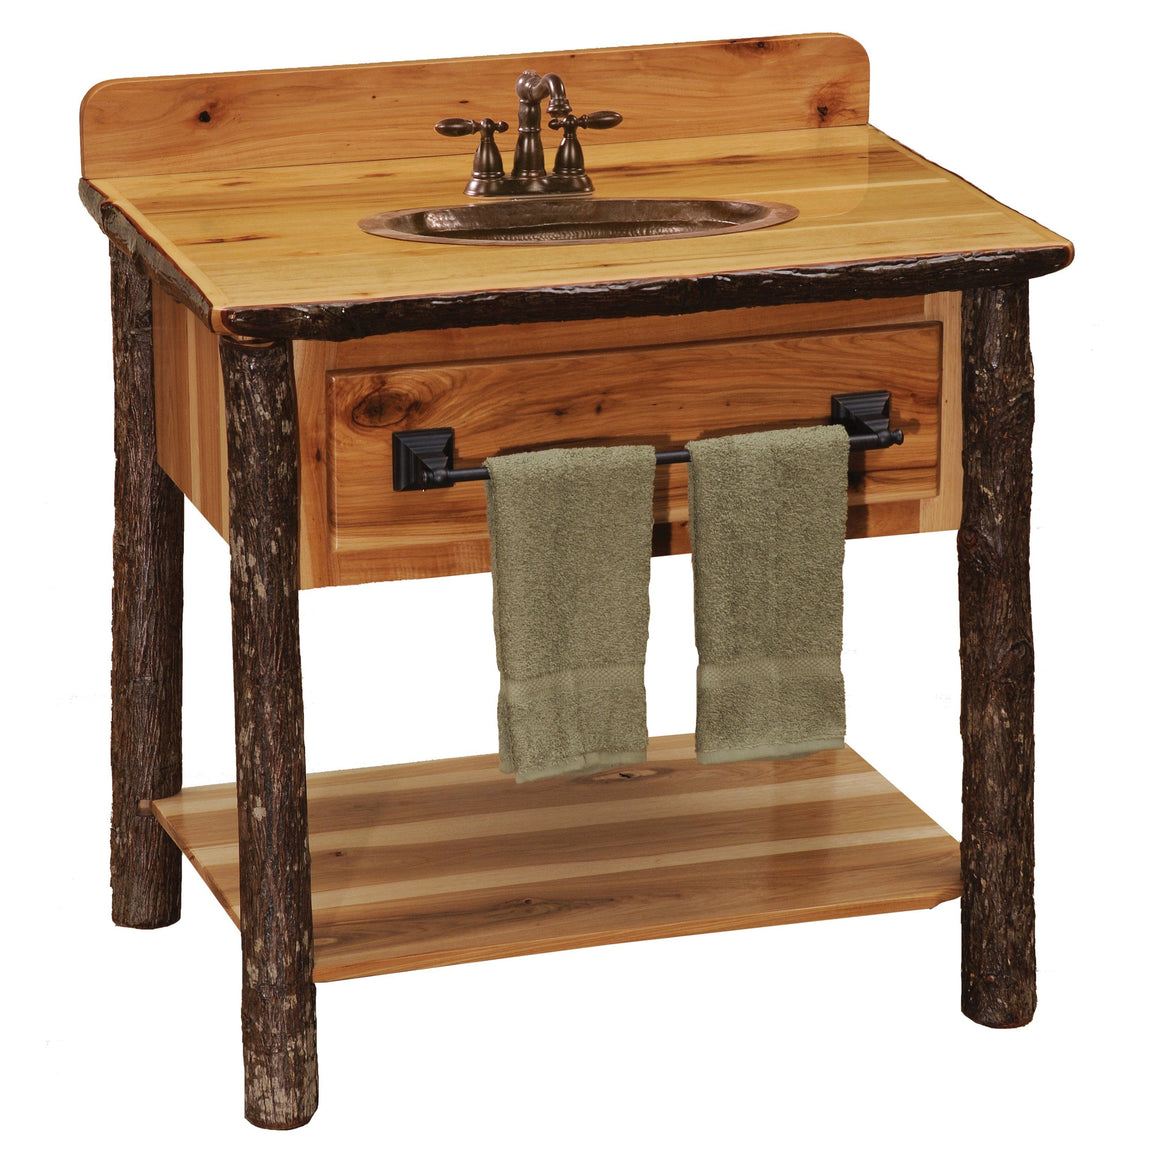 Hickory Log Freestanding Open Vanity with Shelf - without Top-Rustic Deco Incorporated